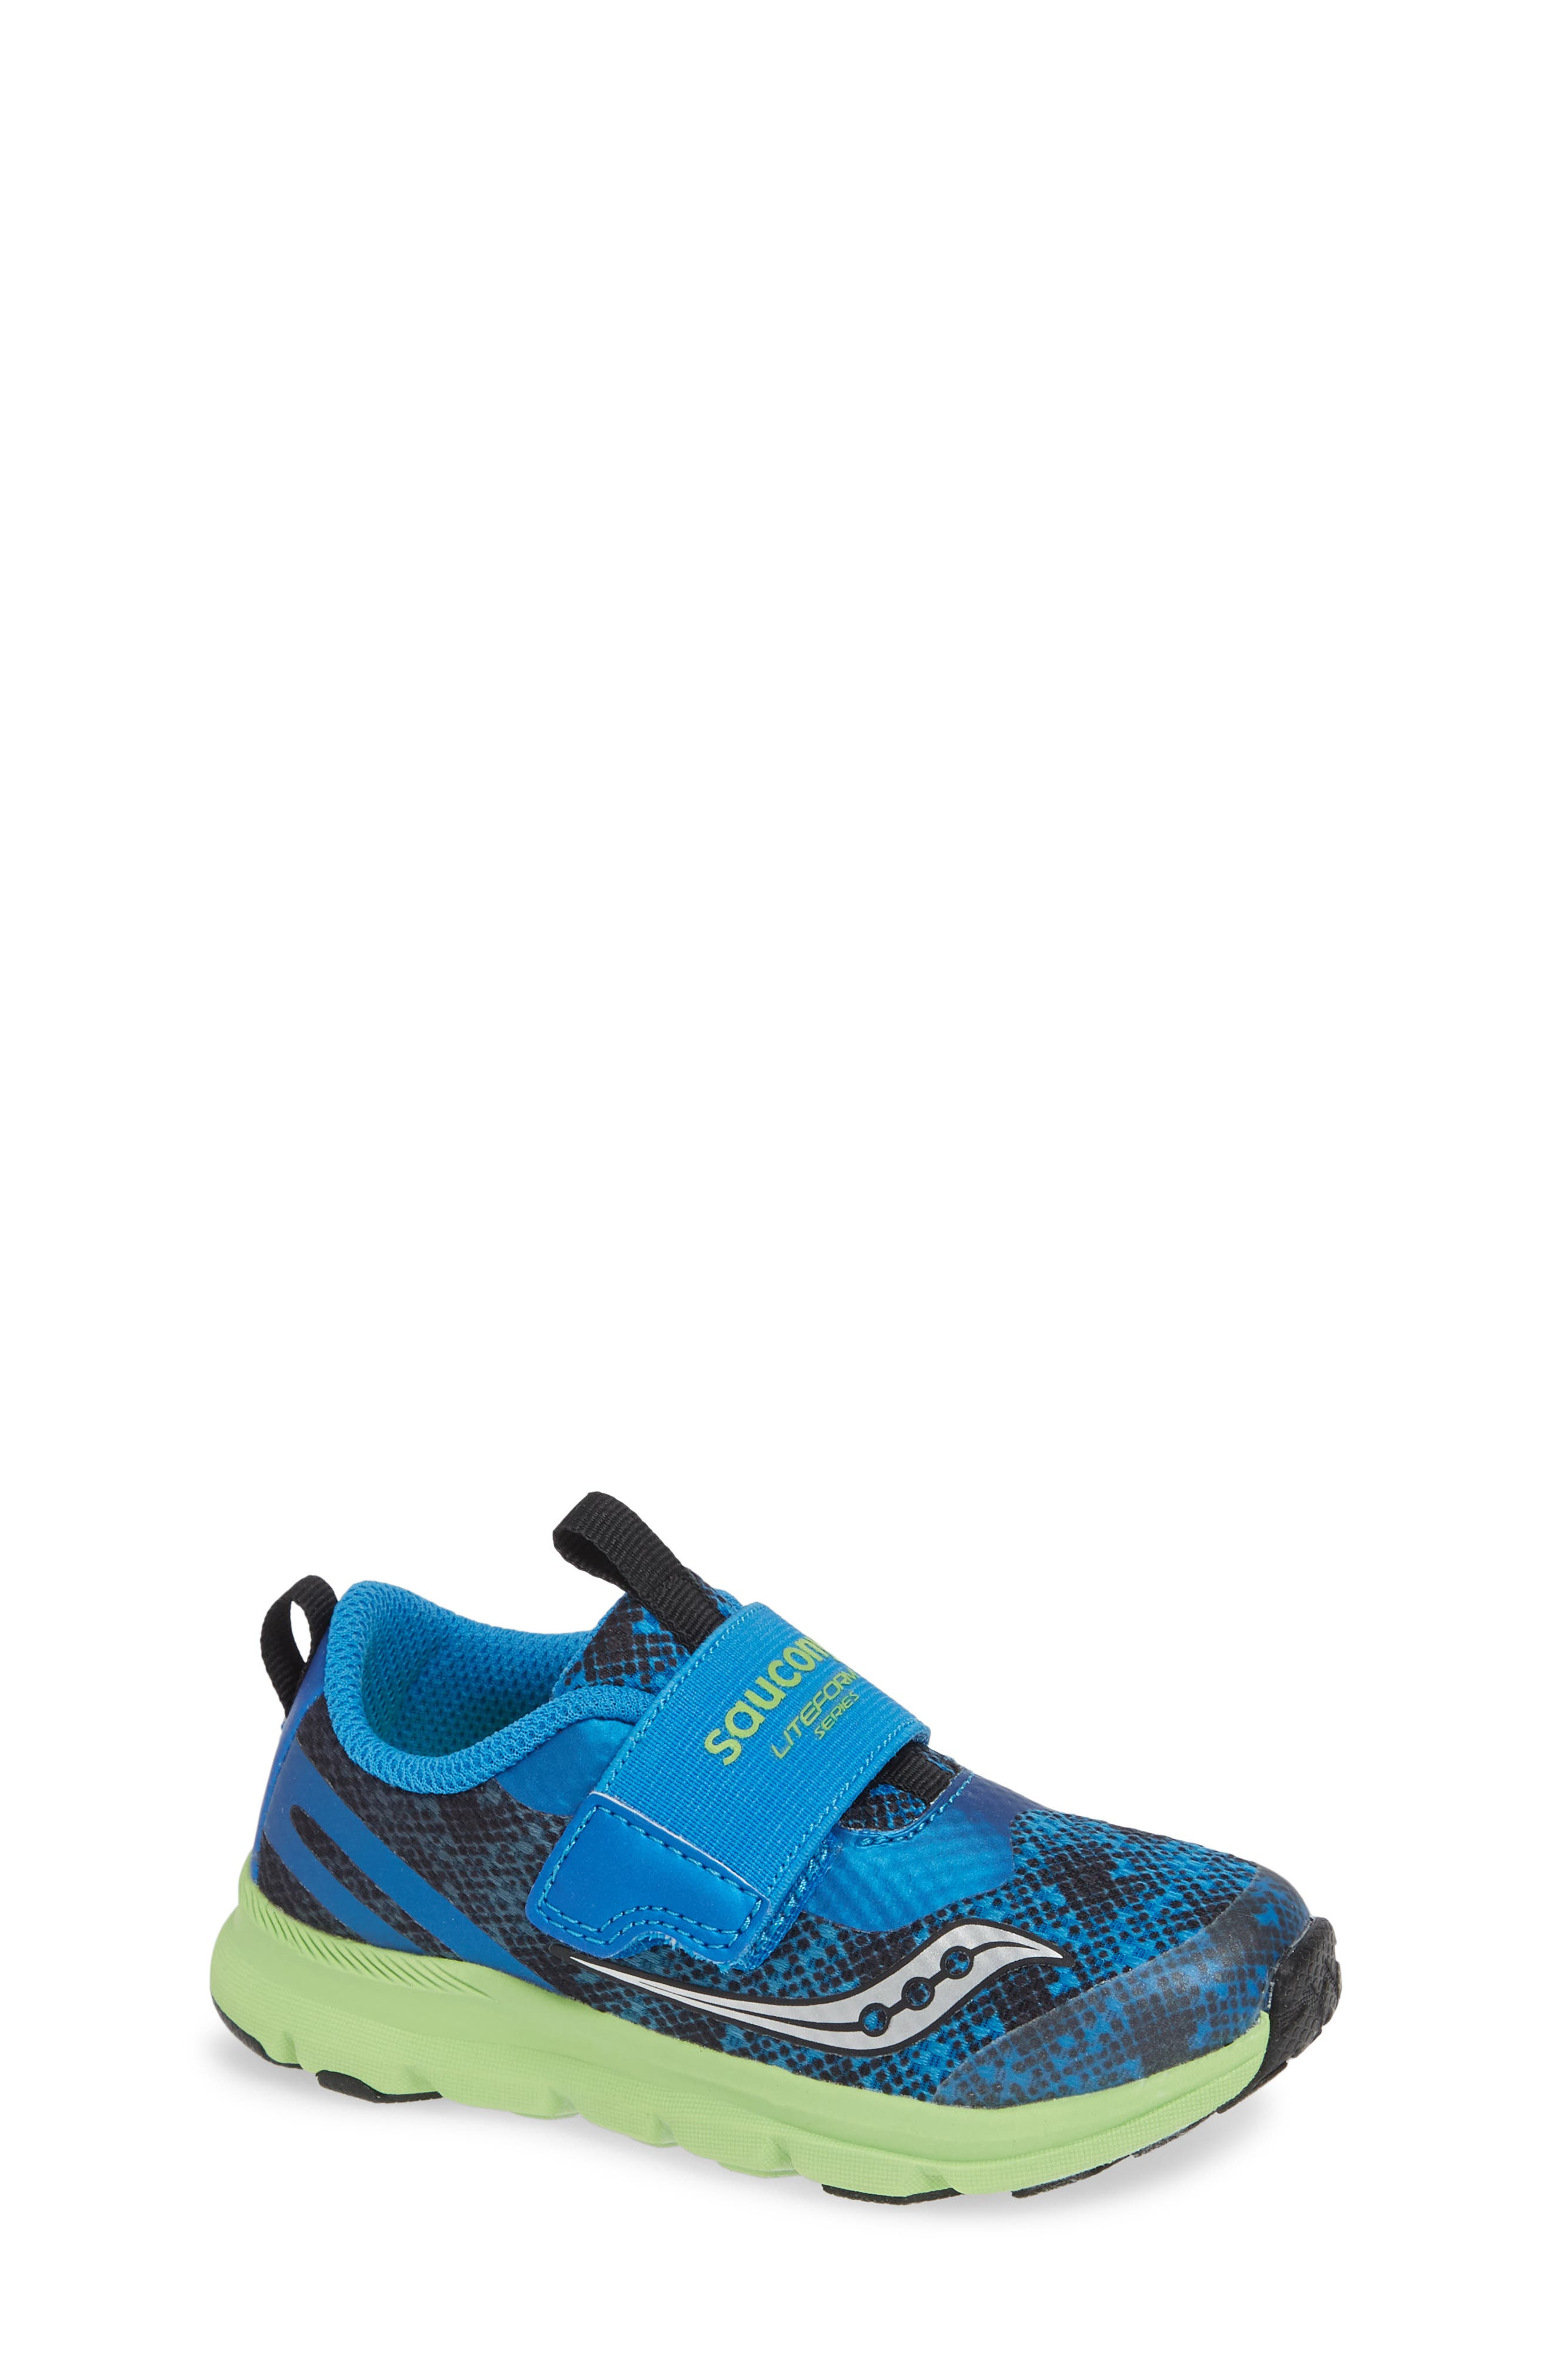 SAUCONY, Baby Liteform Sneaker, Main thumbnail 1, color, BLUE/ GREEN